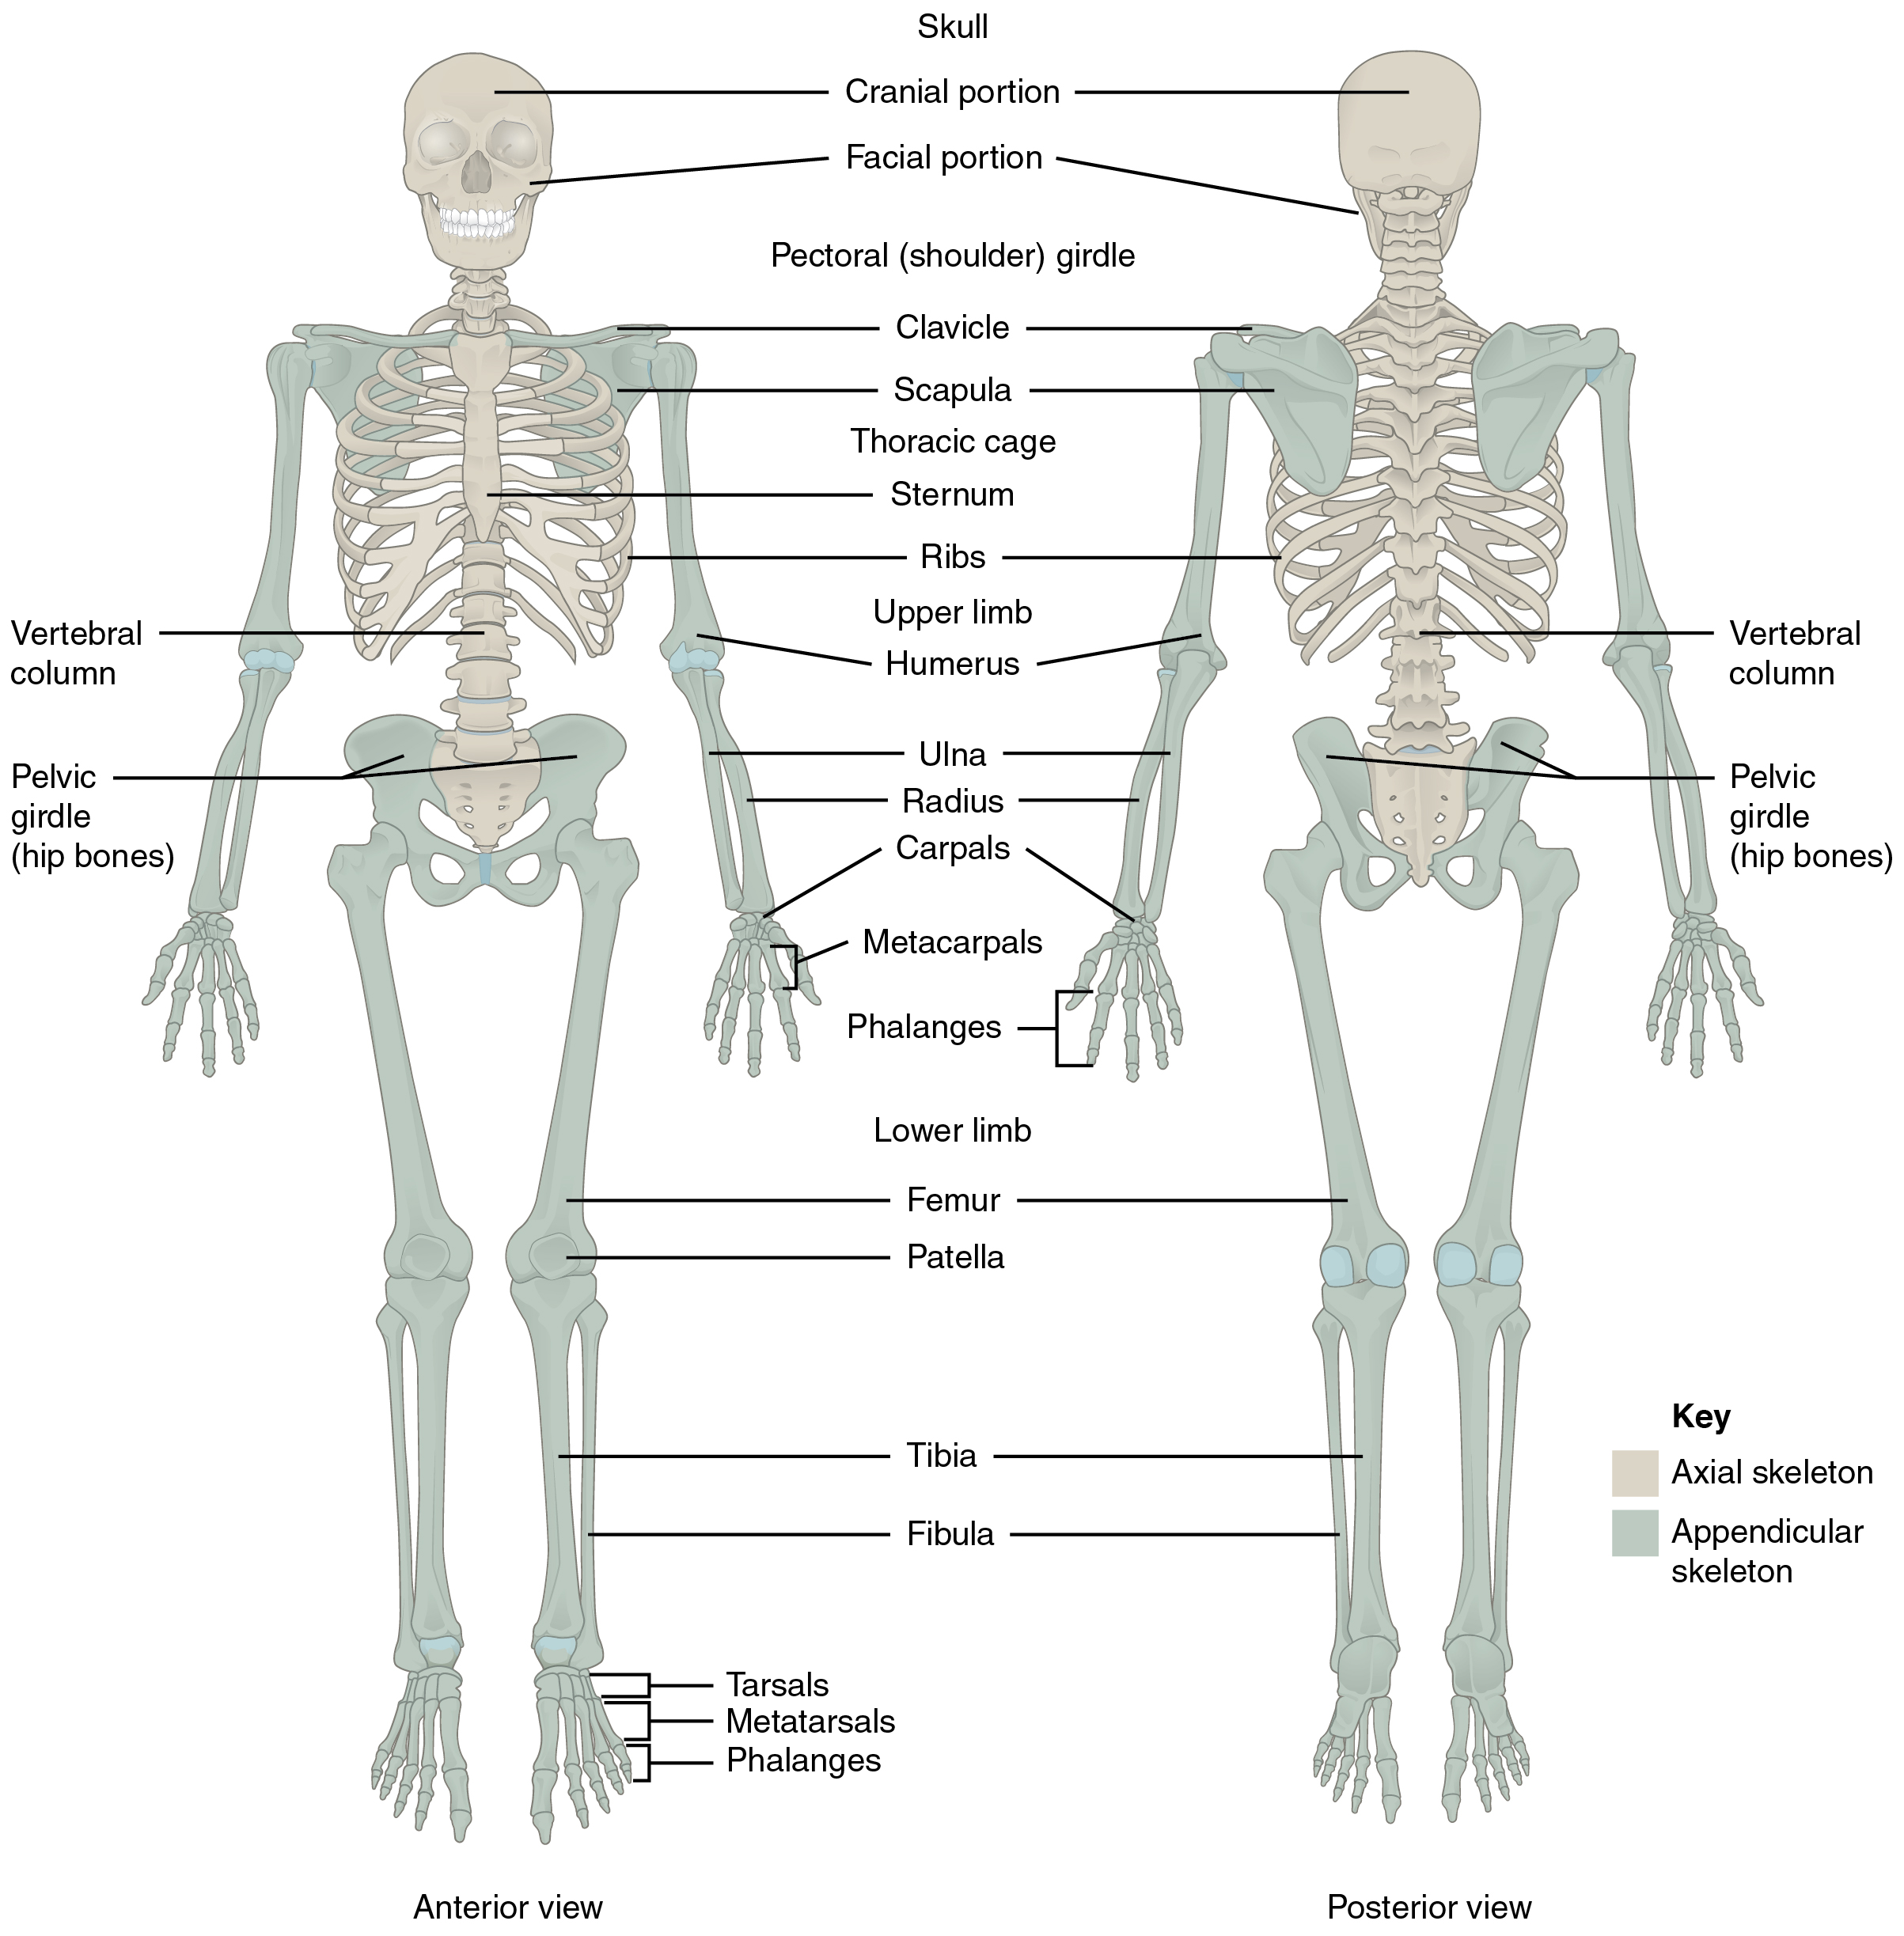 71 Divisions Of The Skeletal System Anatomy And Physiology Figure Diagram Showing Placement Surround Sound Speakers This Shows Human Skeleton Identifies Major Bones Left Panel 1